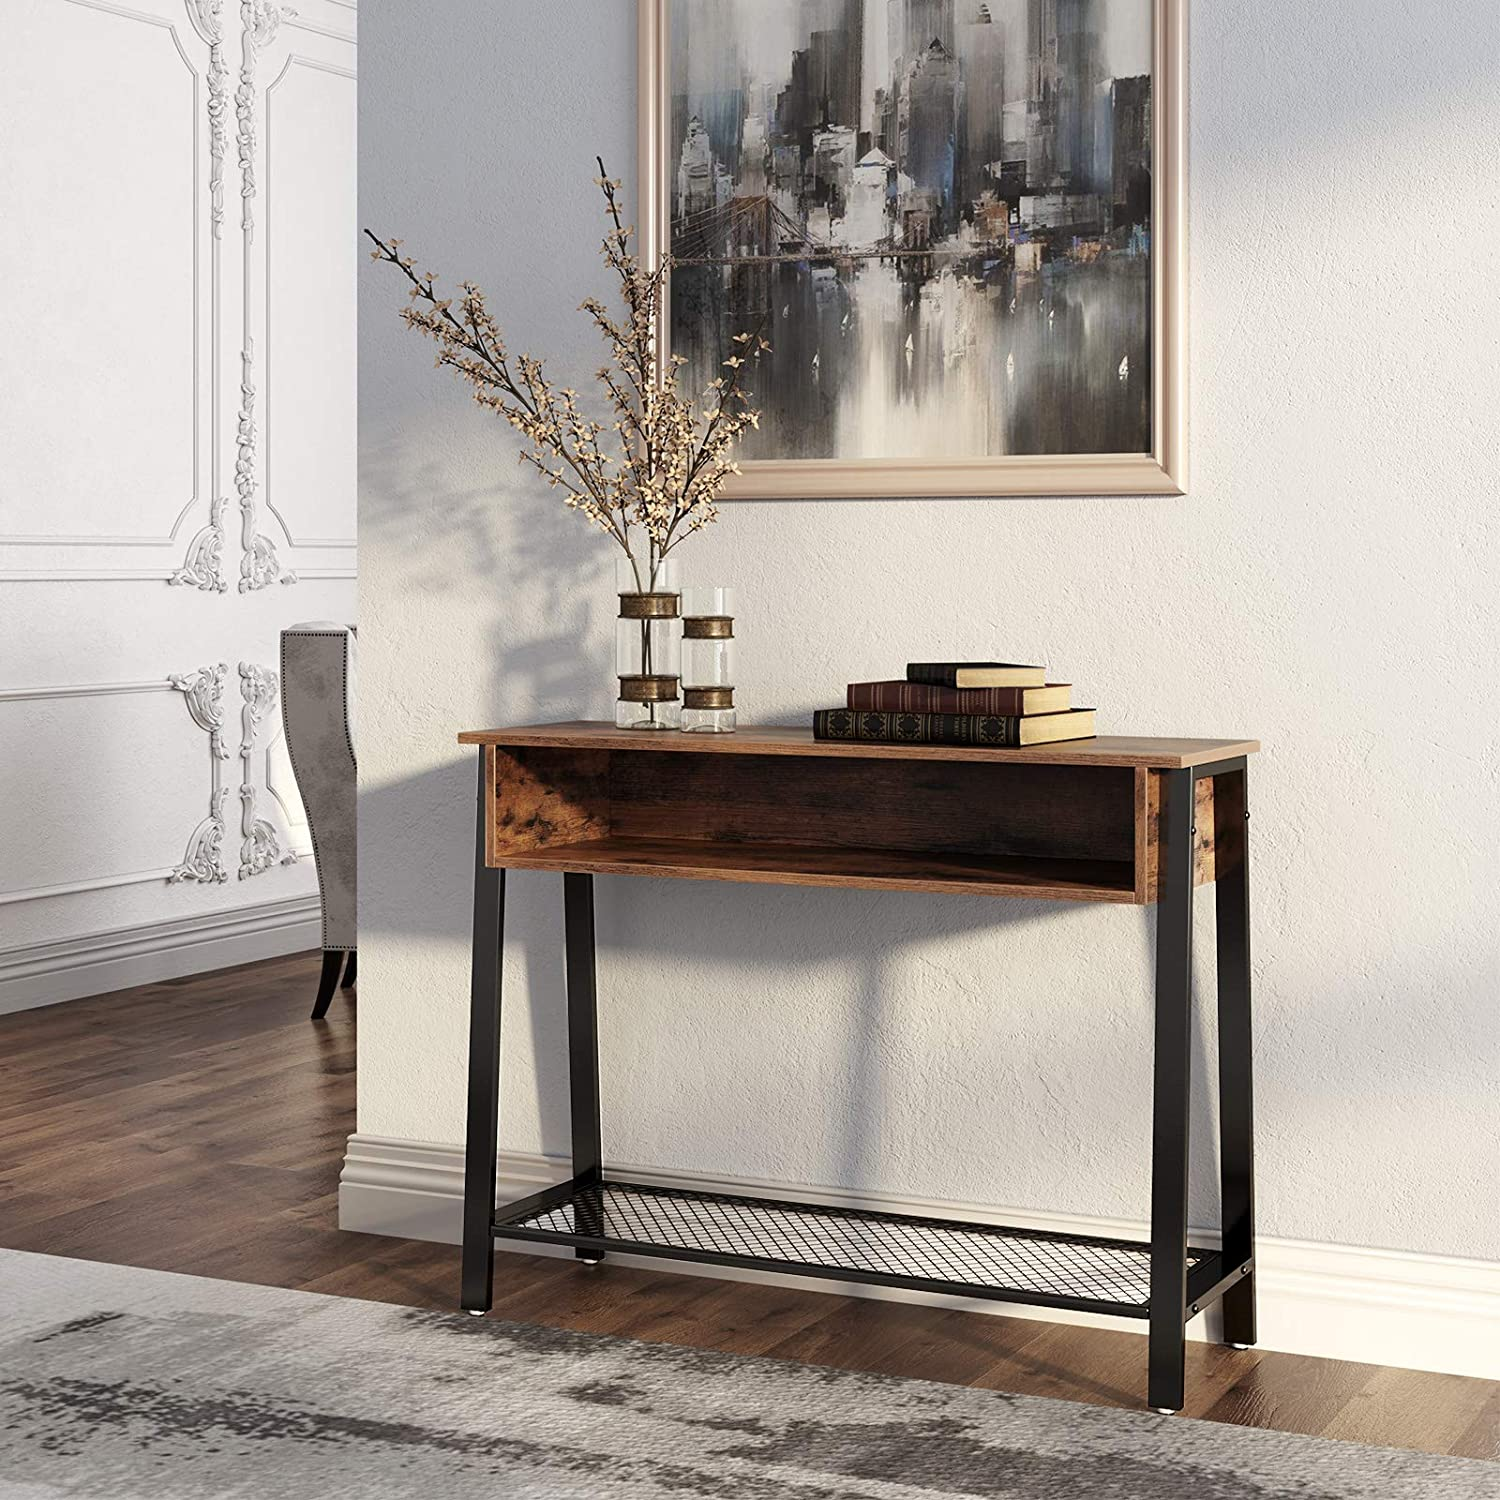 VASAGLE Industrial Sofa Table, Console Table with Mesh Shelf and Storage Rack, Entryway Table for Living Room and Office, Stable Metal Frame